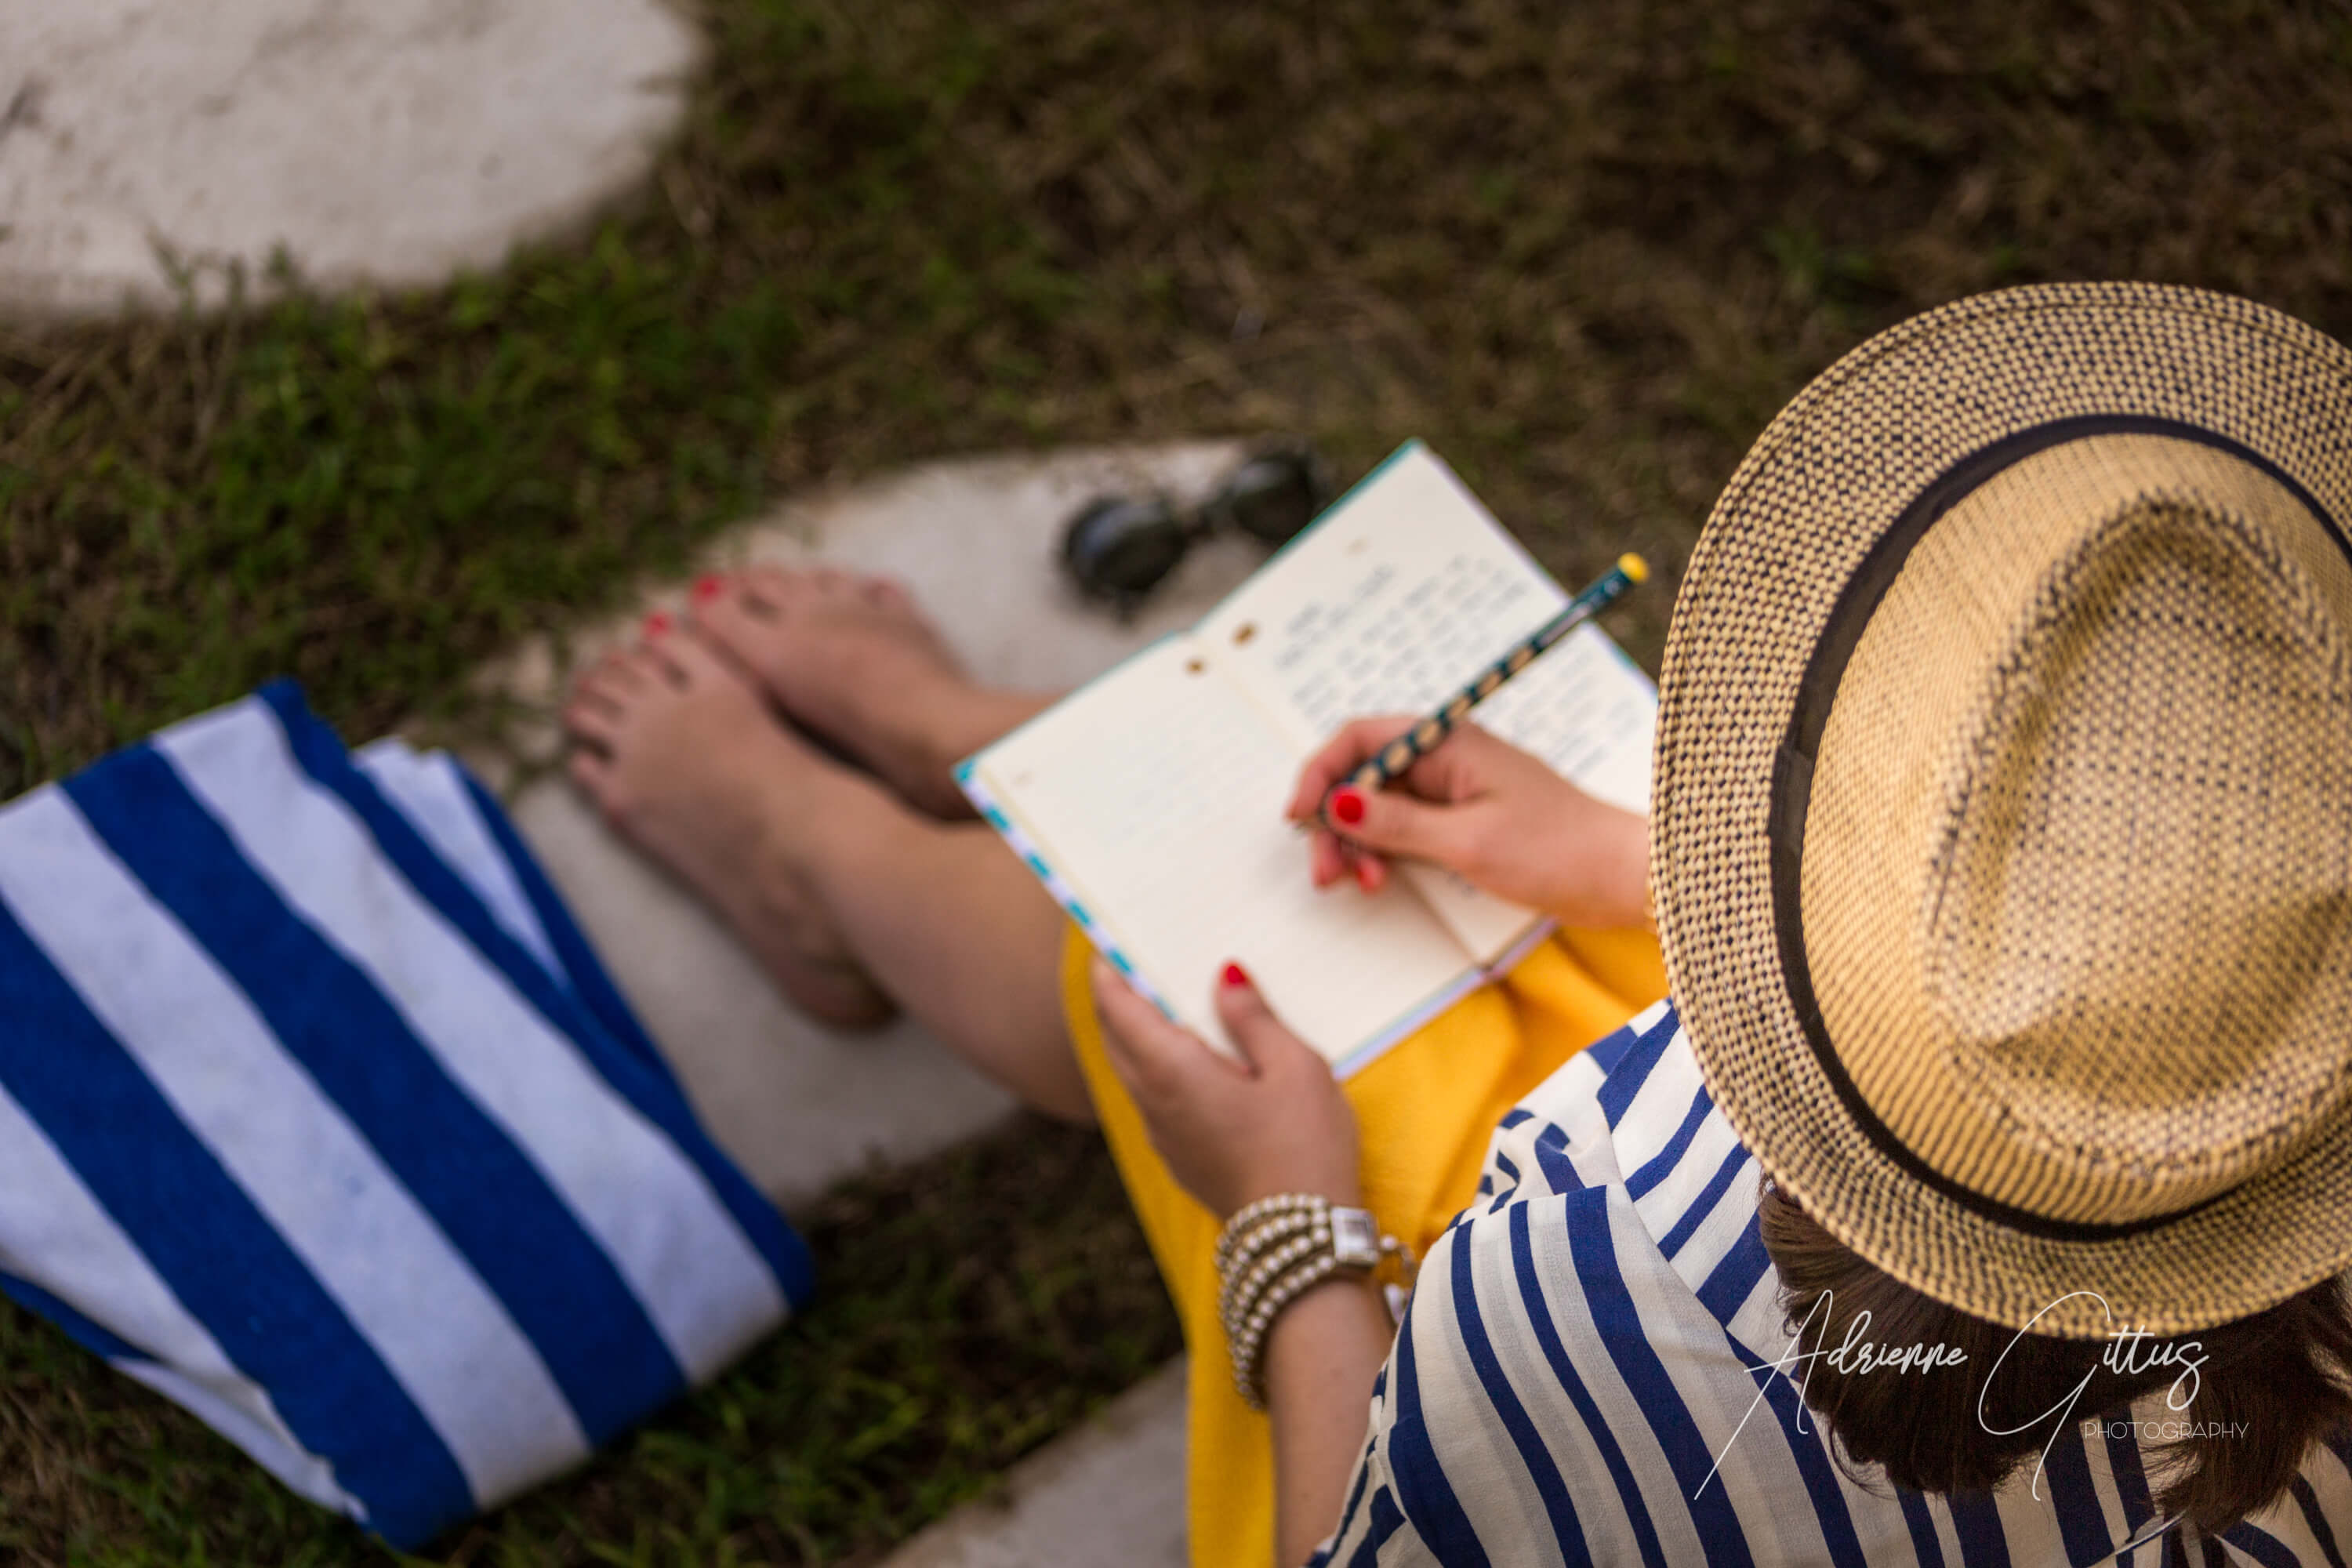 Looking over shoulder of woman with diary in straw hat fashion